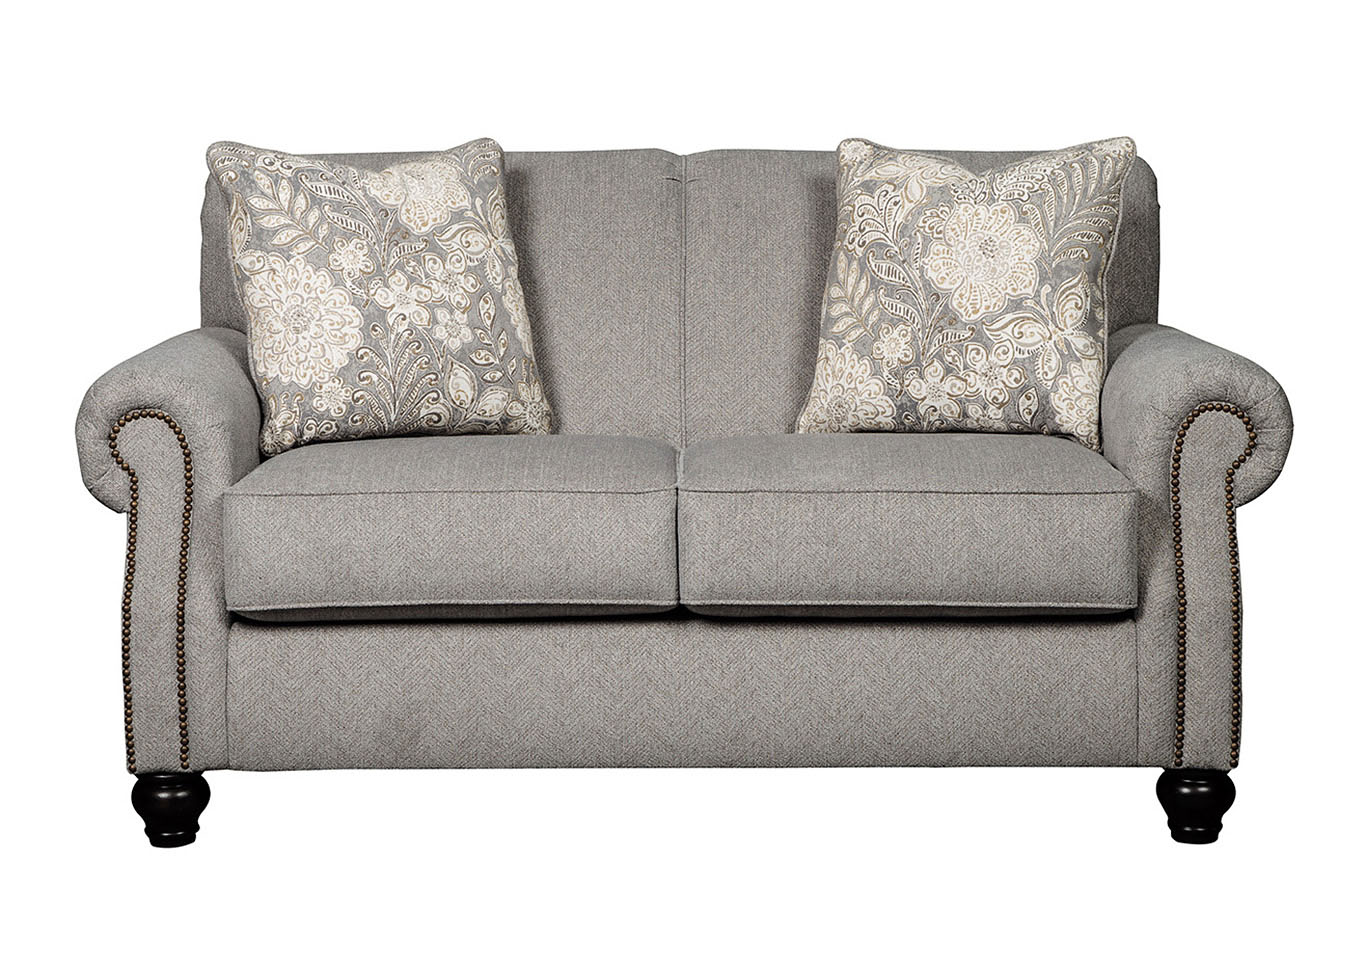 Austin 39 S Couch Potatoes Furniture Stores Austin Texas Avelynne Ocean Loveseat